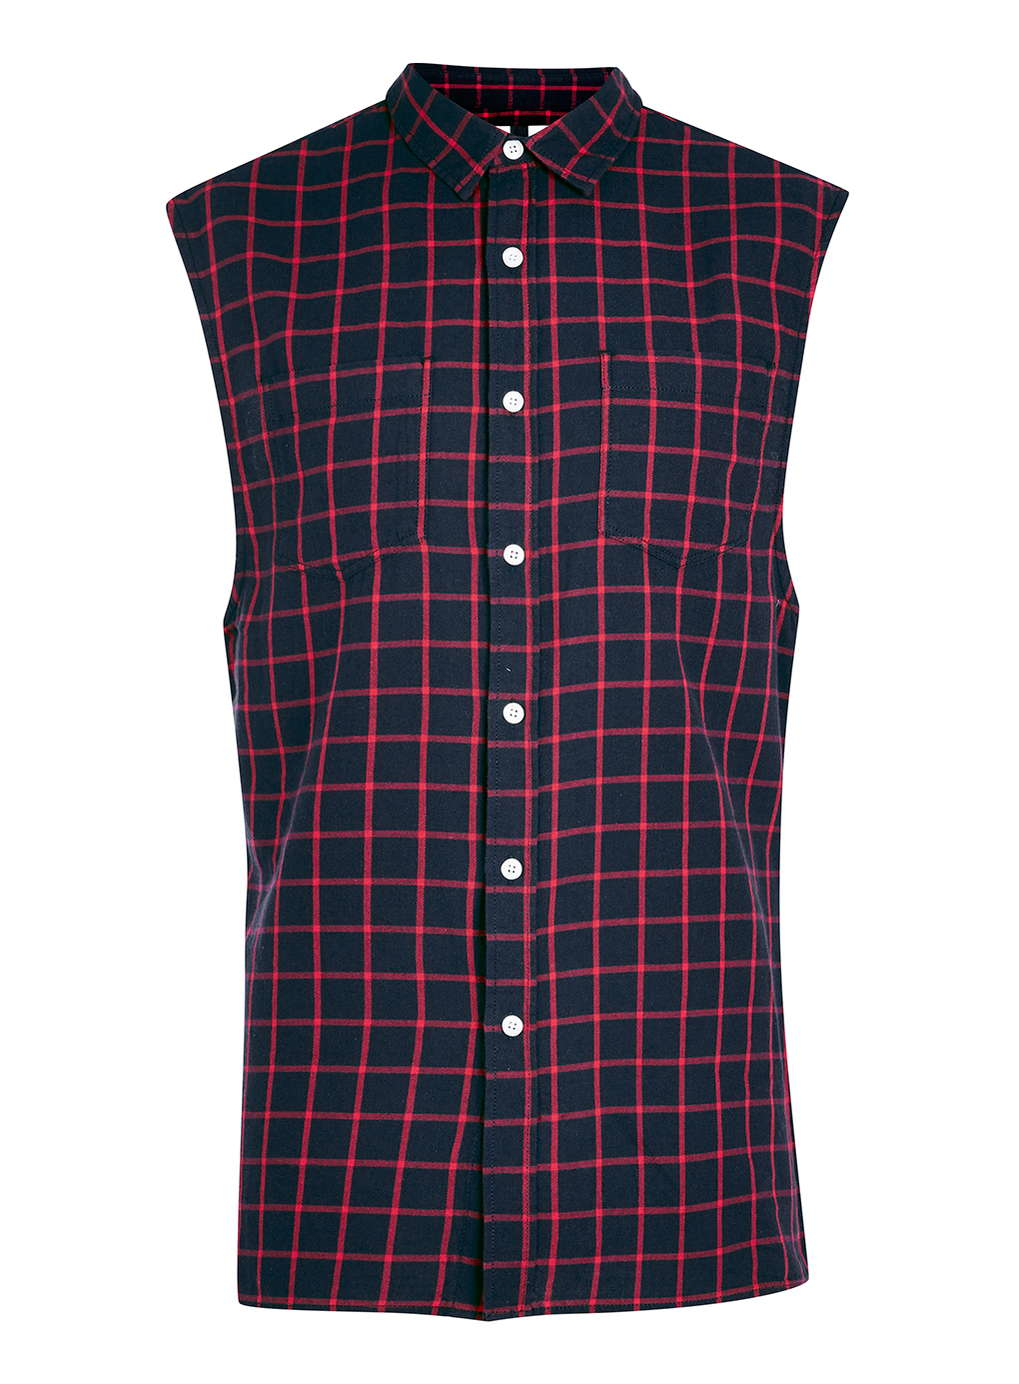 Topman Red Check Casual Sleeveless Shirt In Blue For Men